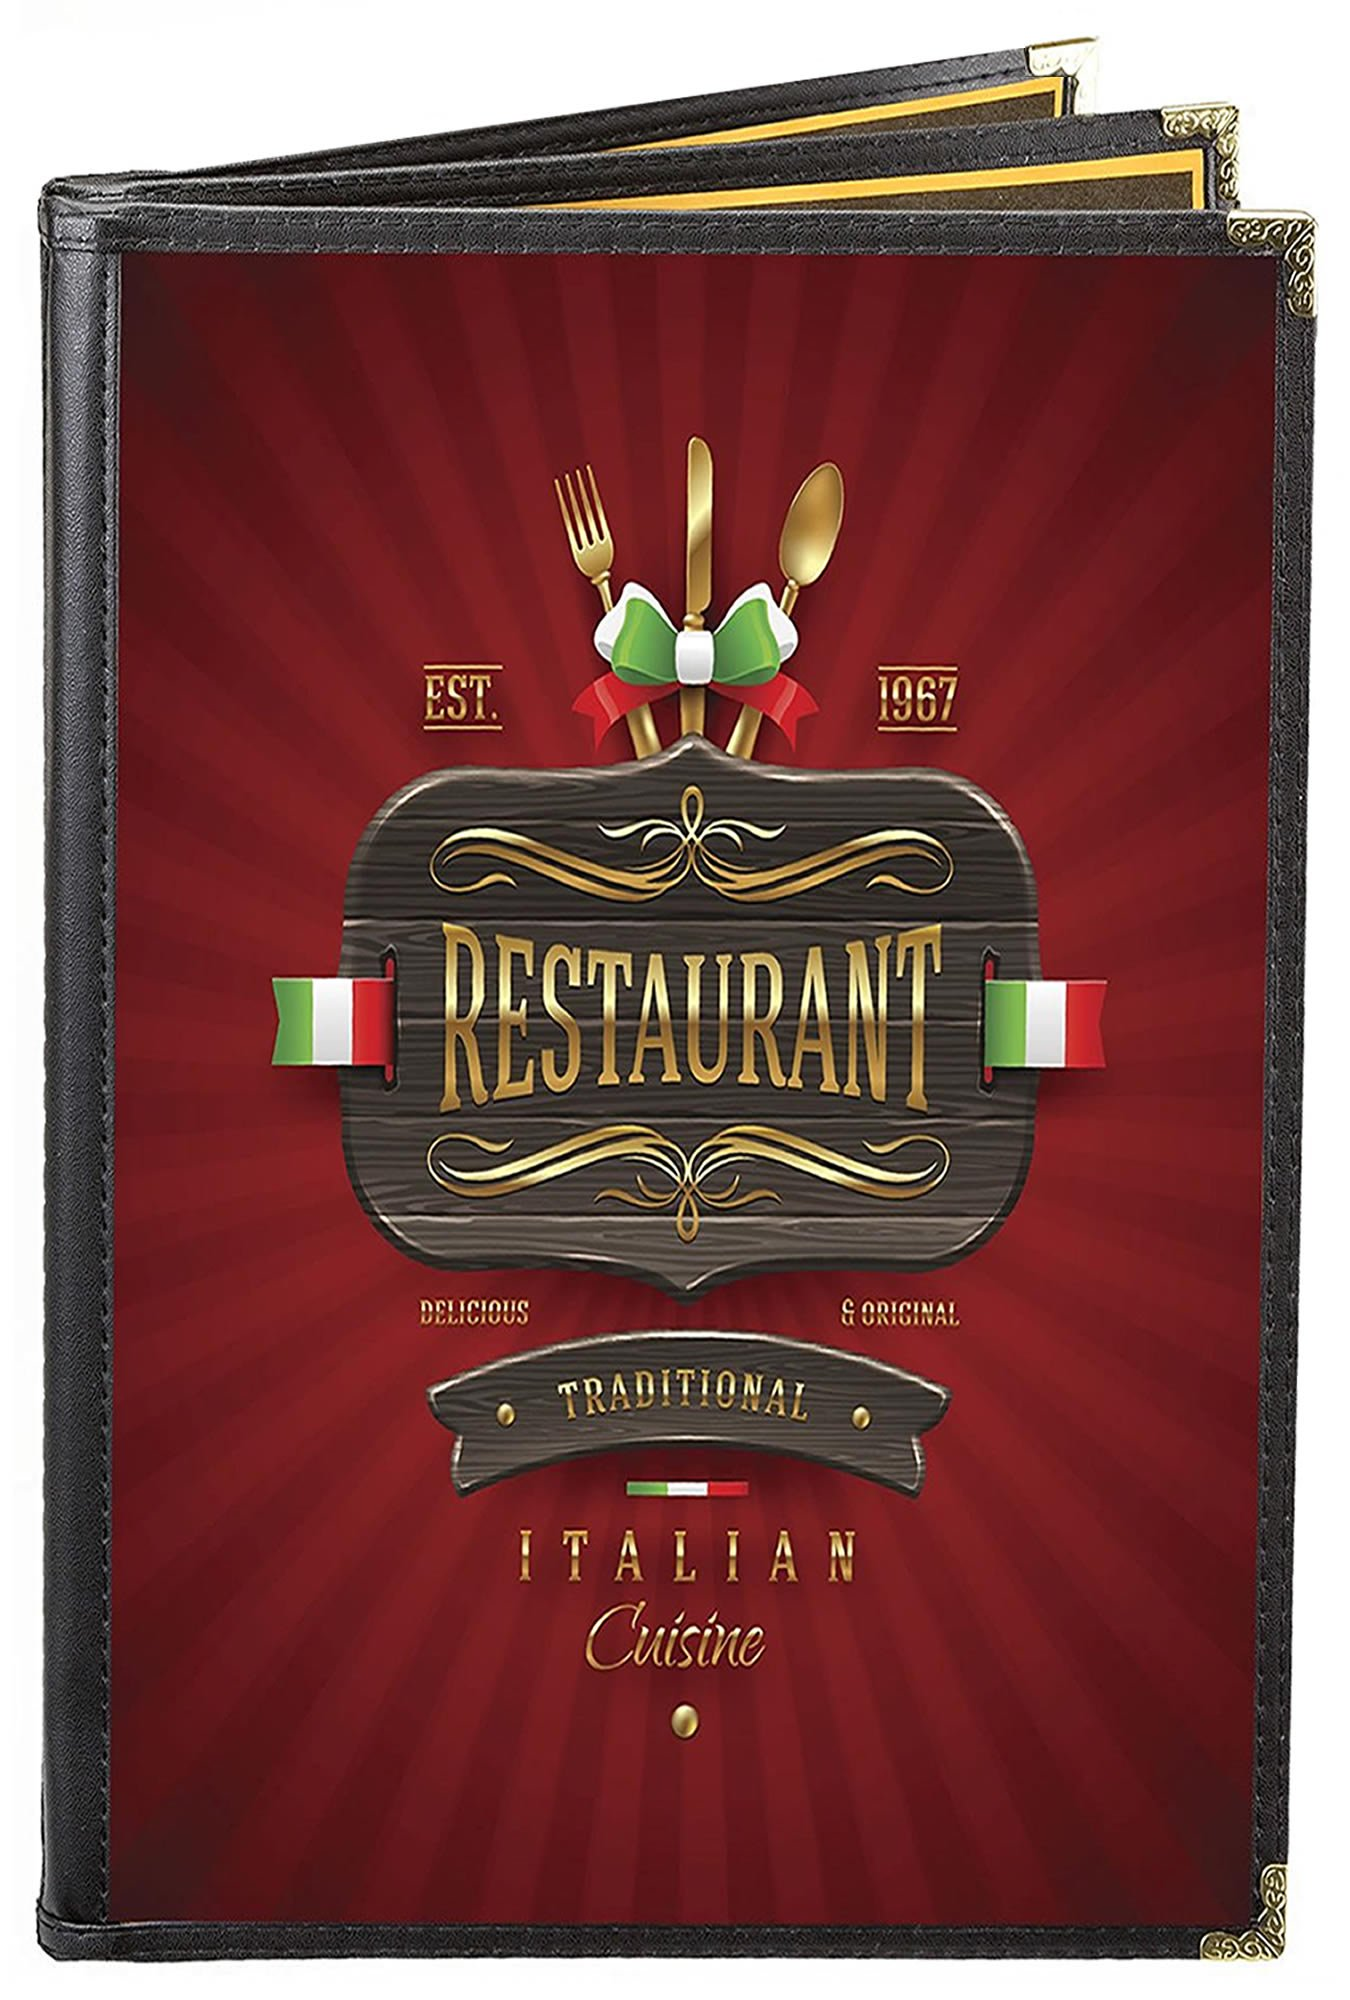 MenuCoverMan • Case of 25 Menu Covers • BETTER QUALITY #3139 BLACK TRIPLE PANEL BOOKLET - 6-VIEW - 8.5'' WIDE x 11'' TALL - DOUBLE-STITCHED Leatherette Vinyl Sewn Edge. Gold metal corners. by MenuCoverMan